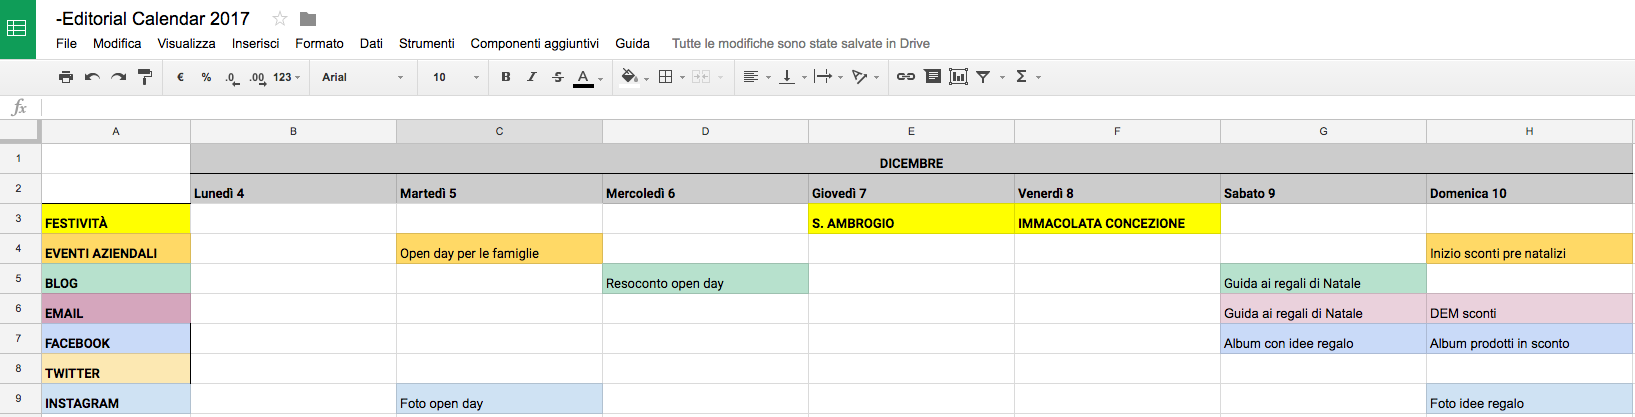 Template calendario editoriale a righe